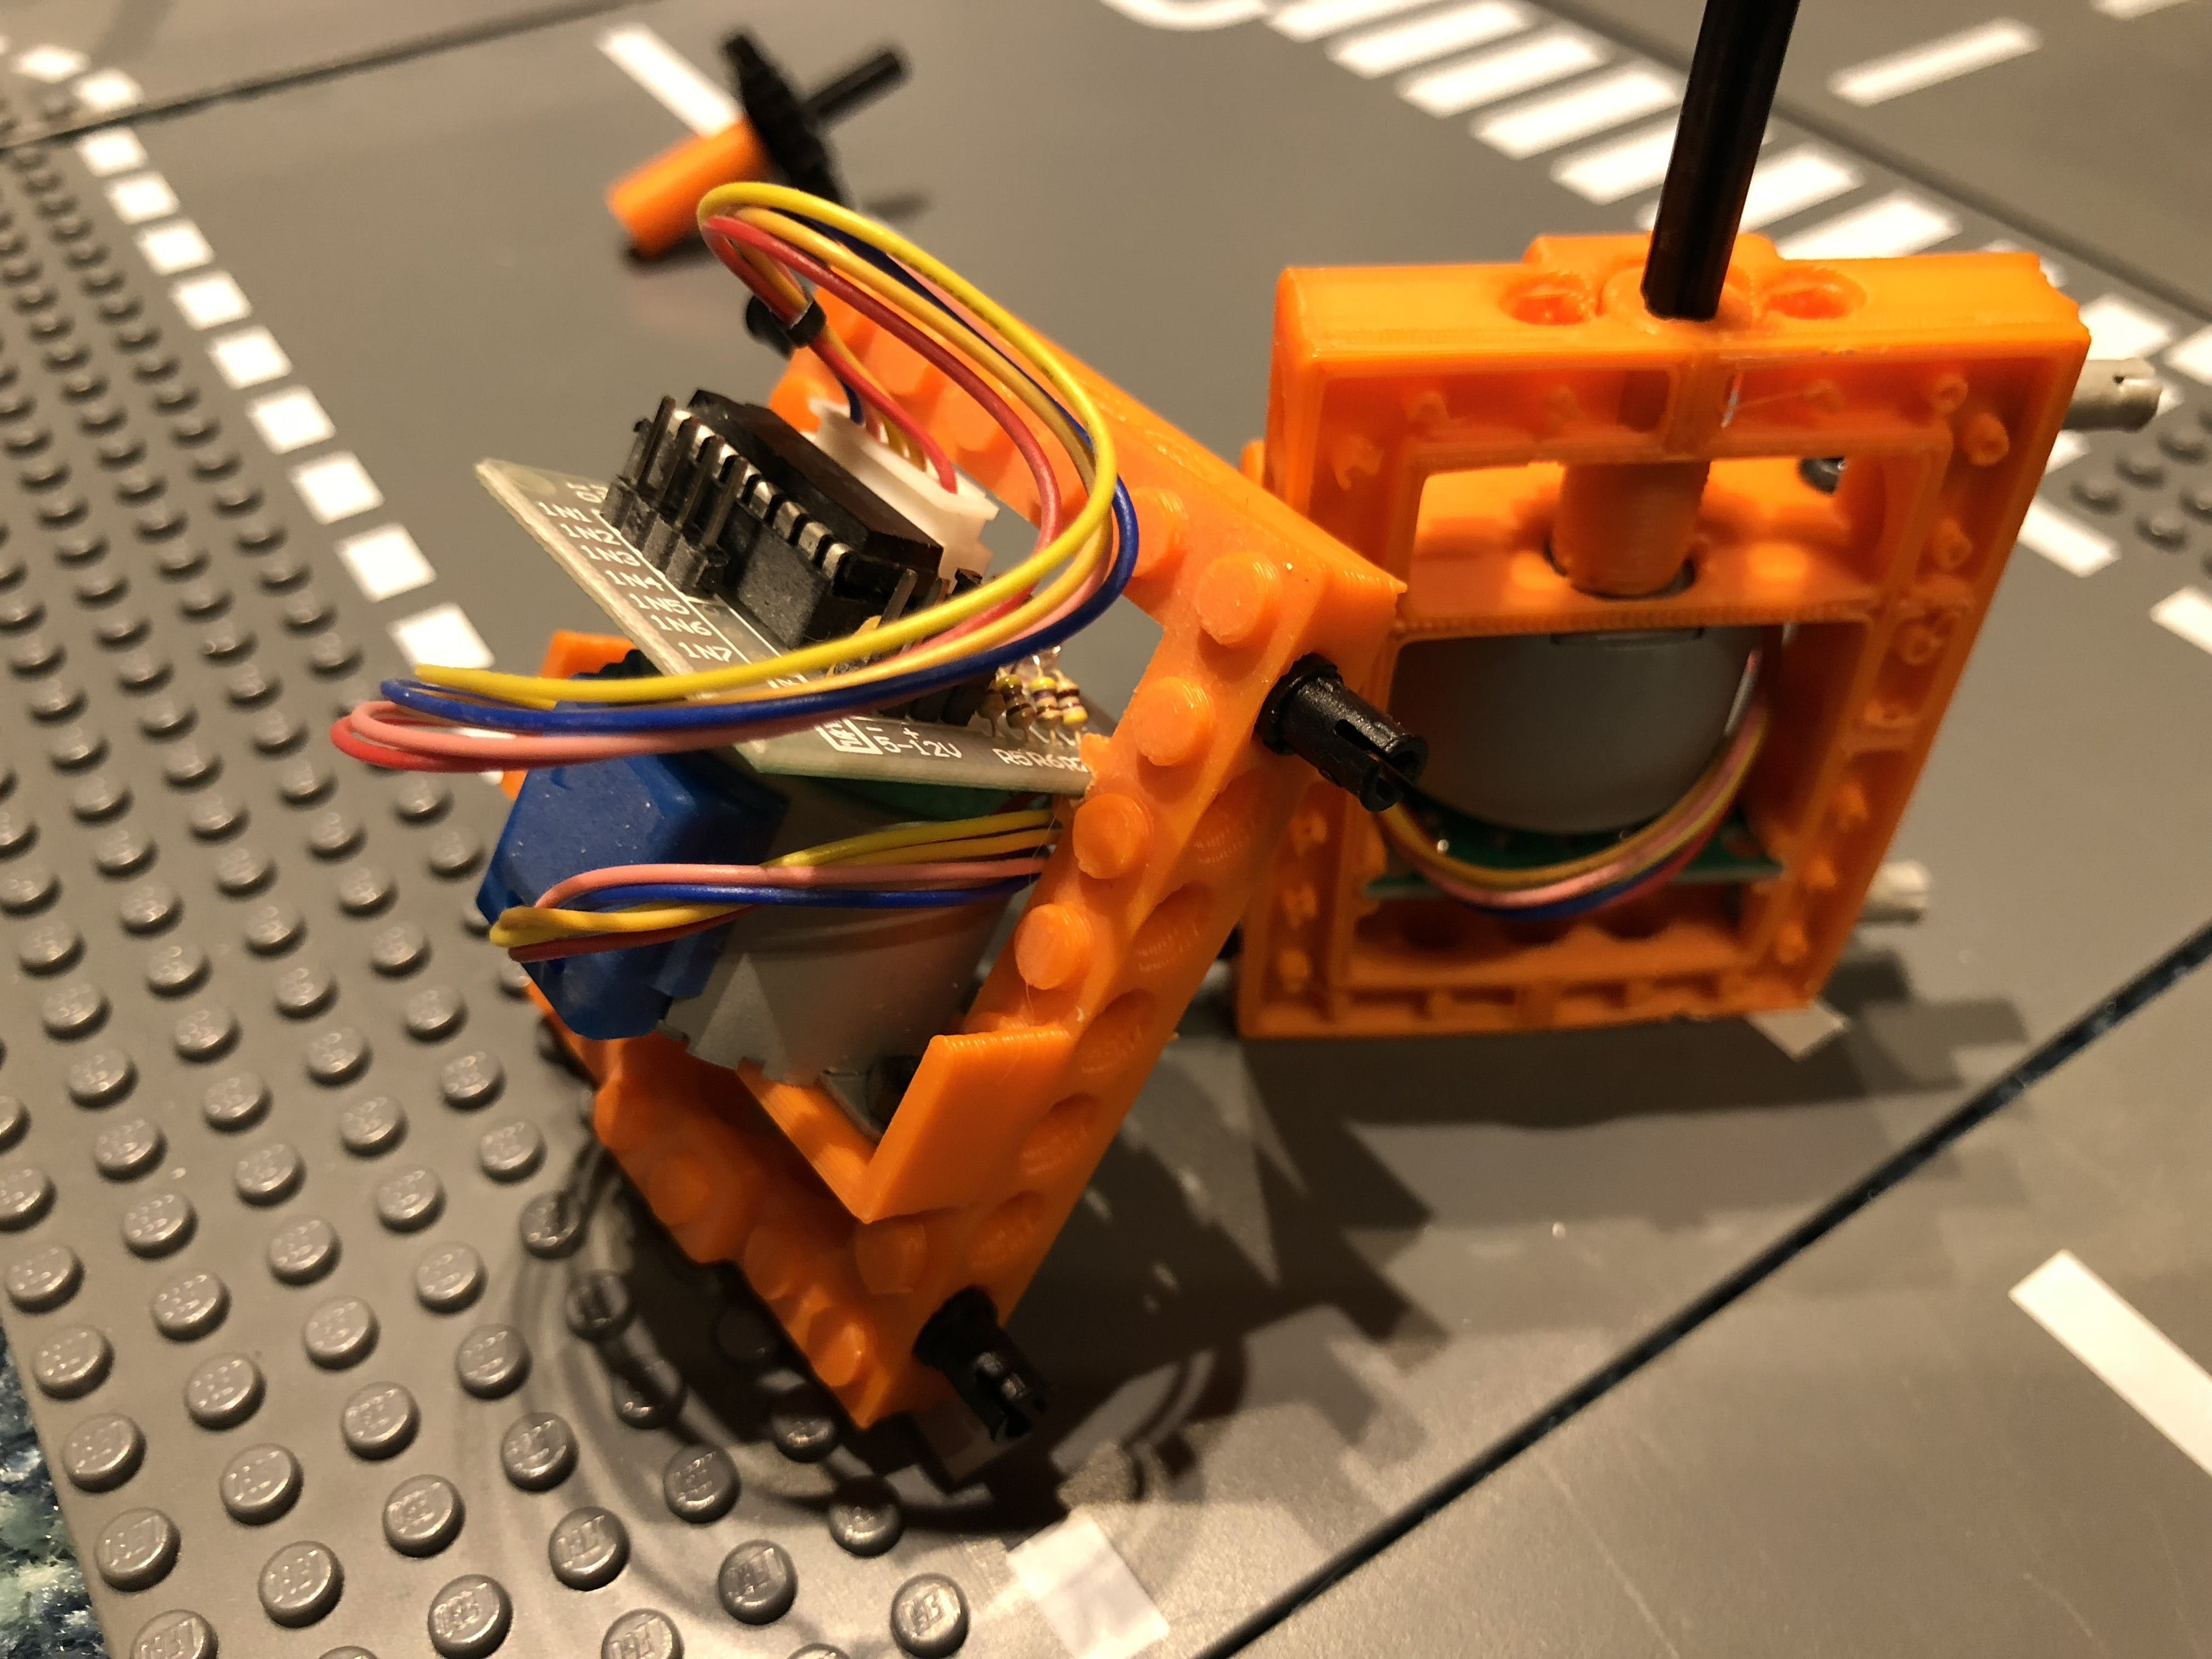 Stepper controller board sits together with the motor.